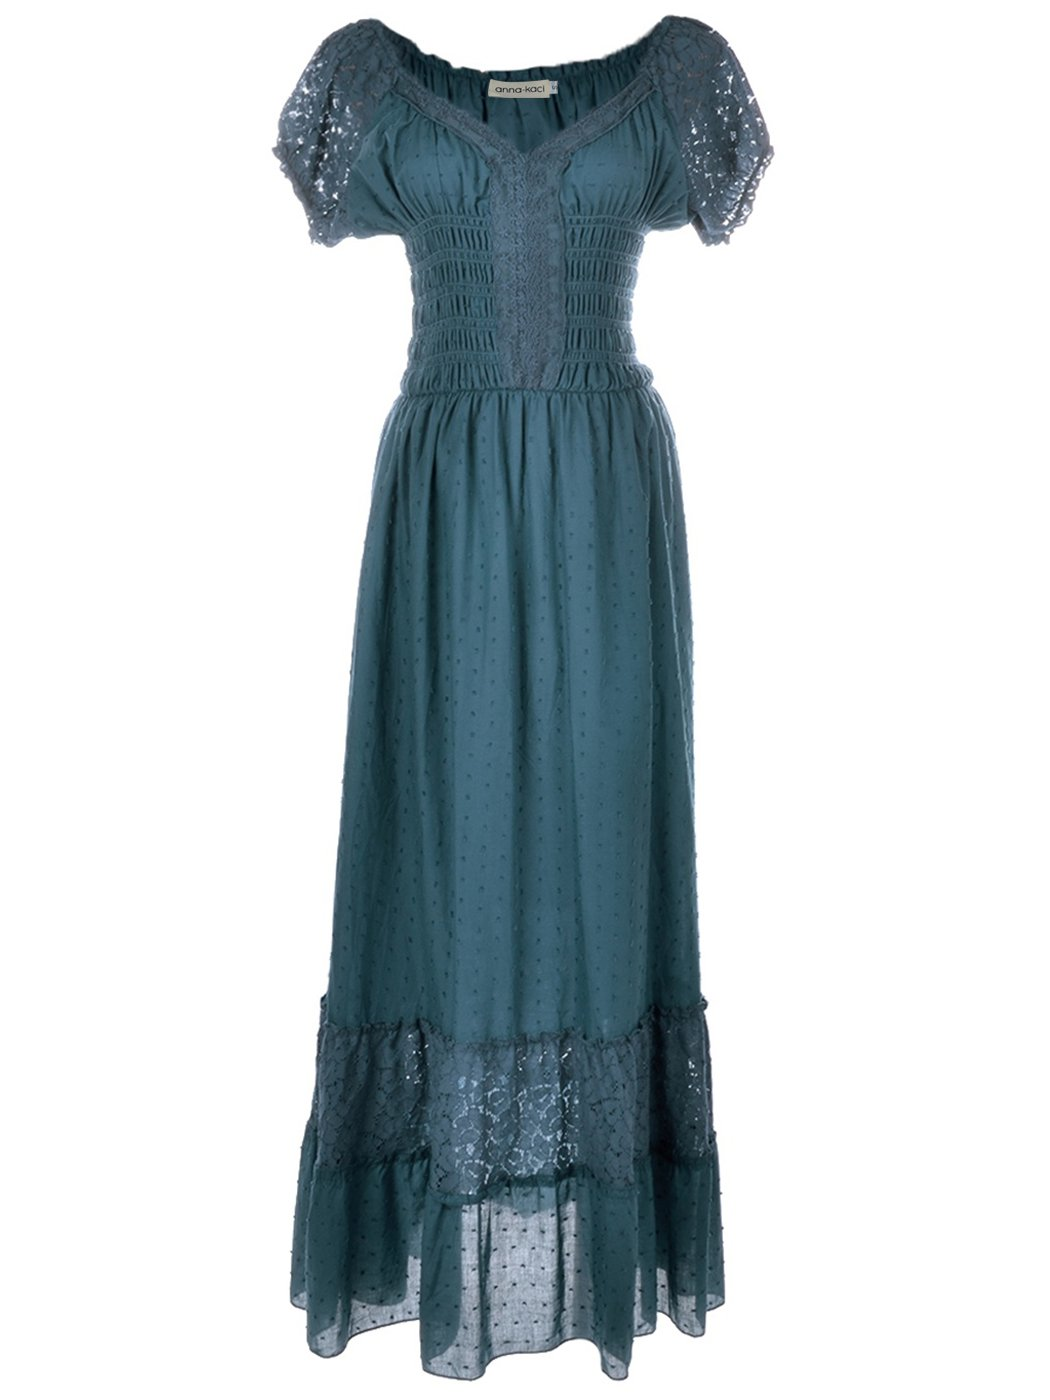 Renaissance Maiden Inspired Teal Blue Lace Cap Sleeve Trim Chemise Underdress - DeluxeAdultCostumes.com